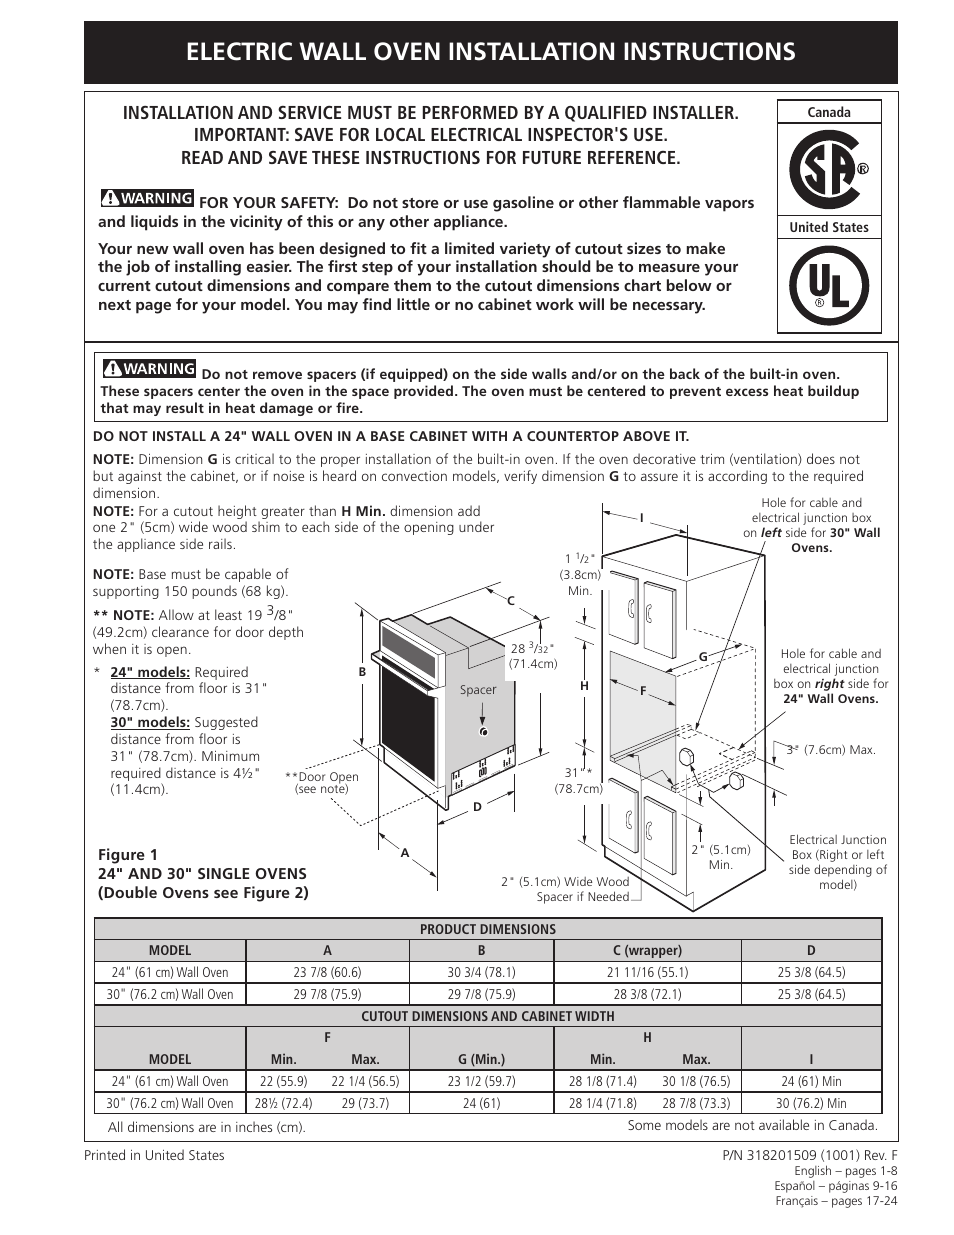 FRIGIDAIRE FEB24S5AS User Manual | 24 pages | Also for: FEB24S2AB,  FEB24S2AS, FEB24S5AB, FFEW2425LS